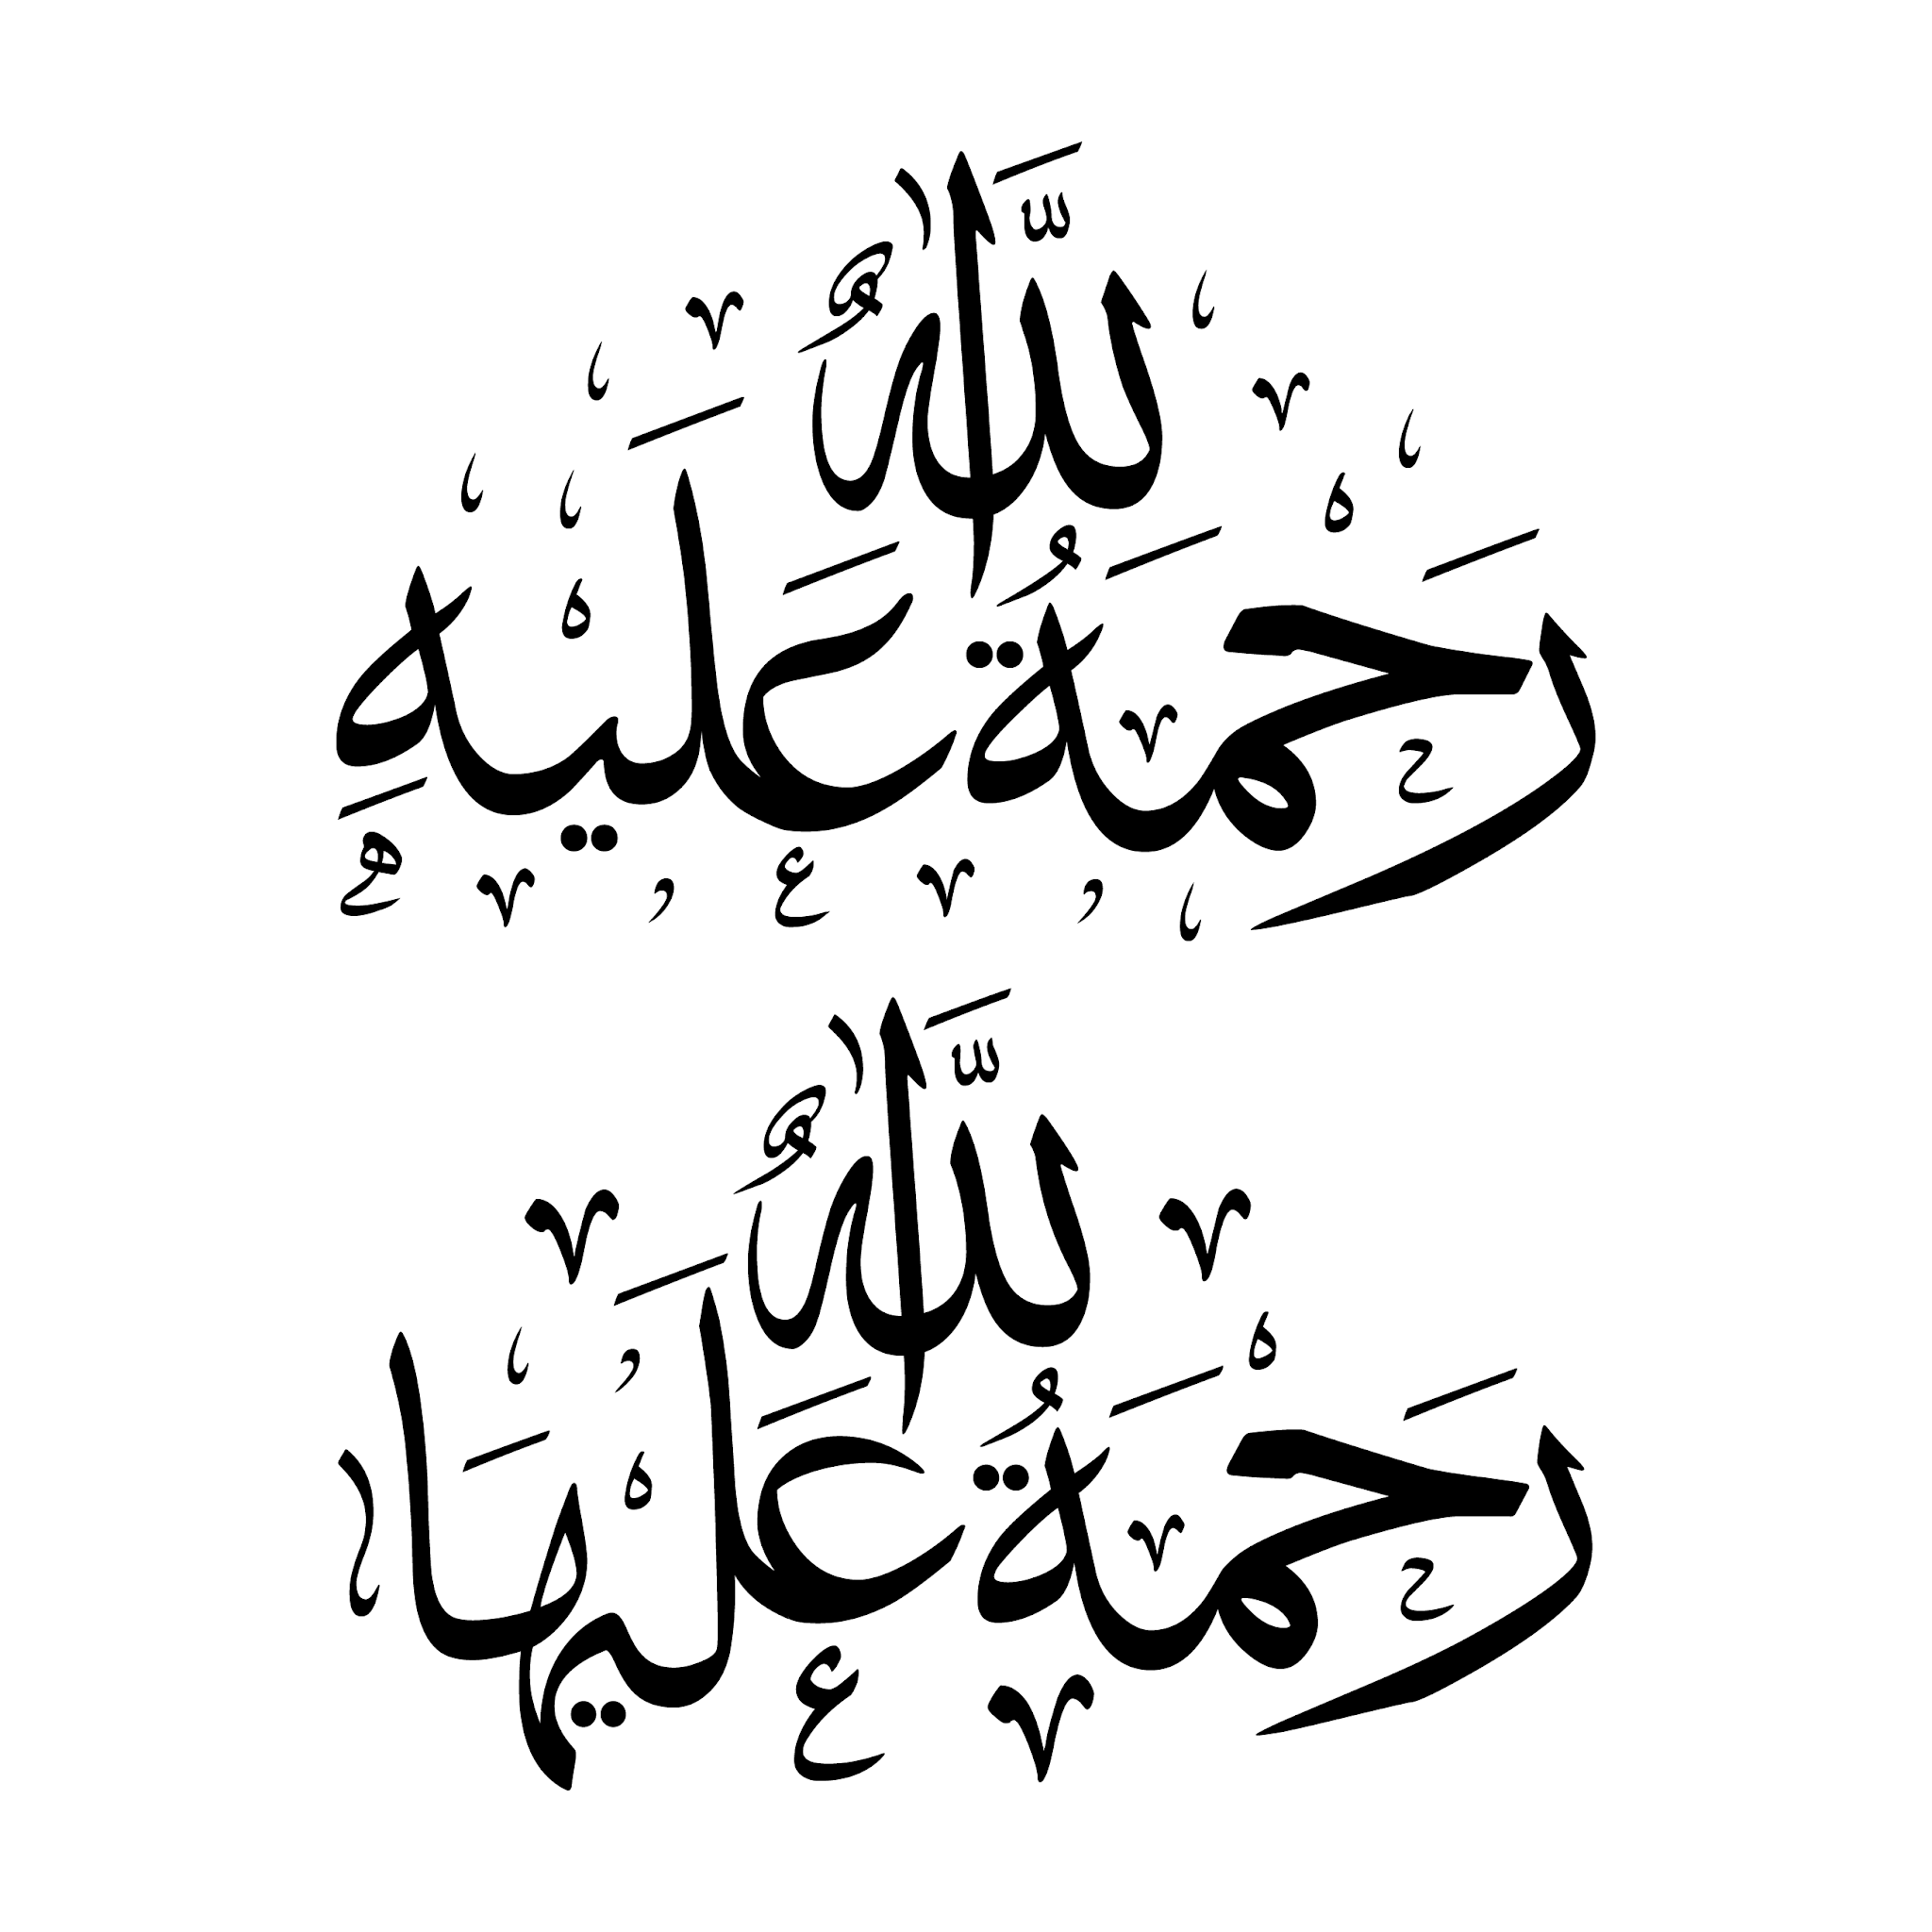 rahmat allah ealayh islamic svg eps psd ai pdf png vector download free #islamic #islam #arab #arabic #vector #vectors #scripts #fonts #font